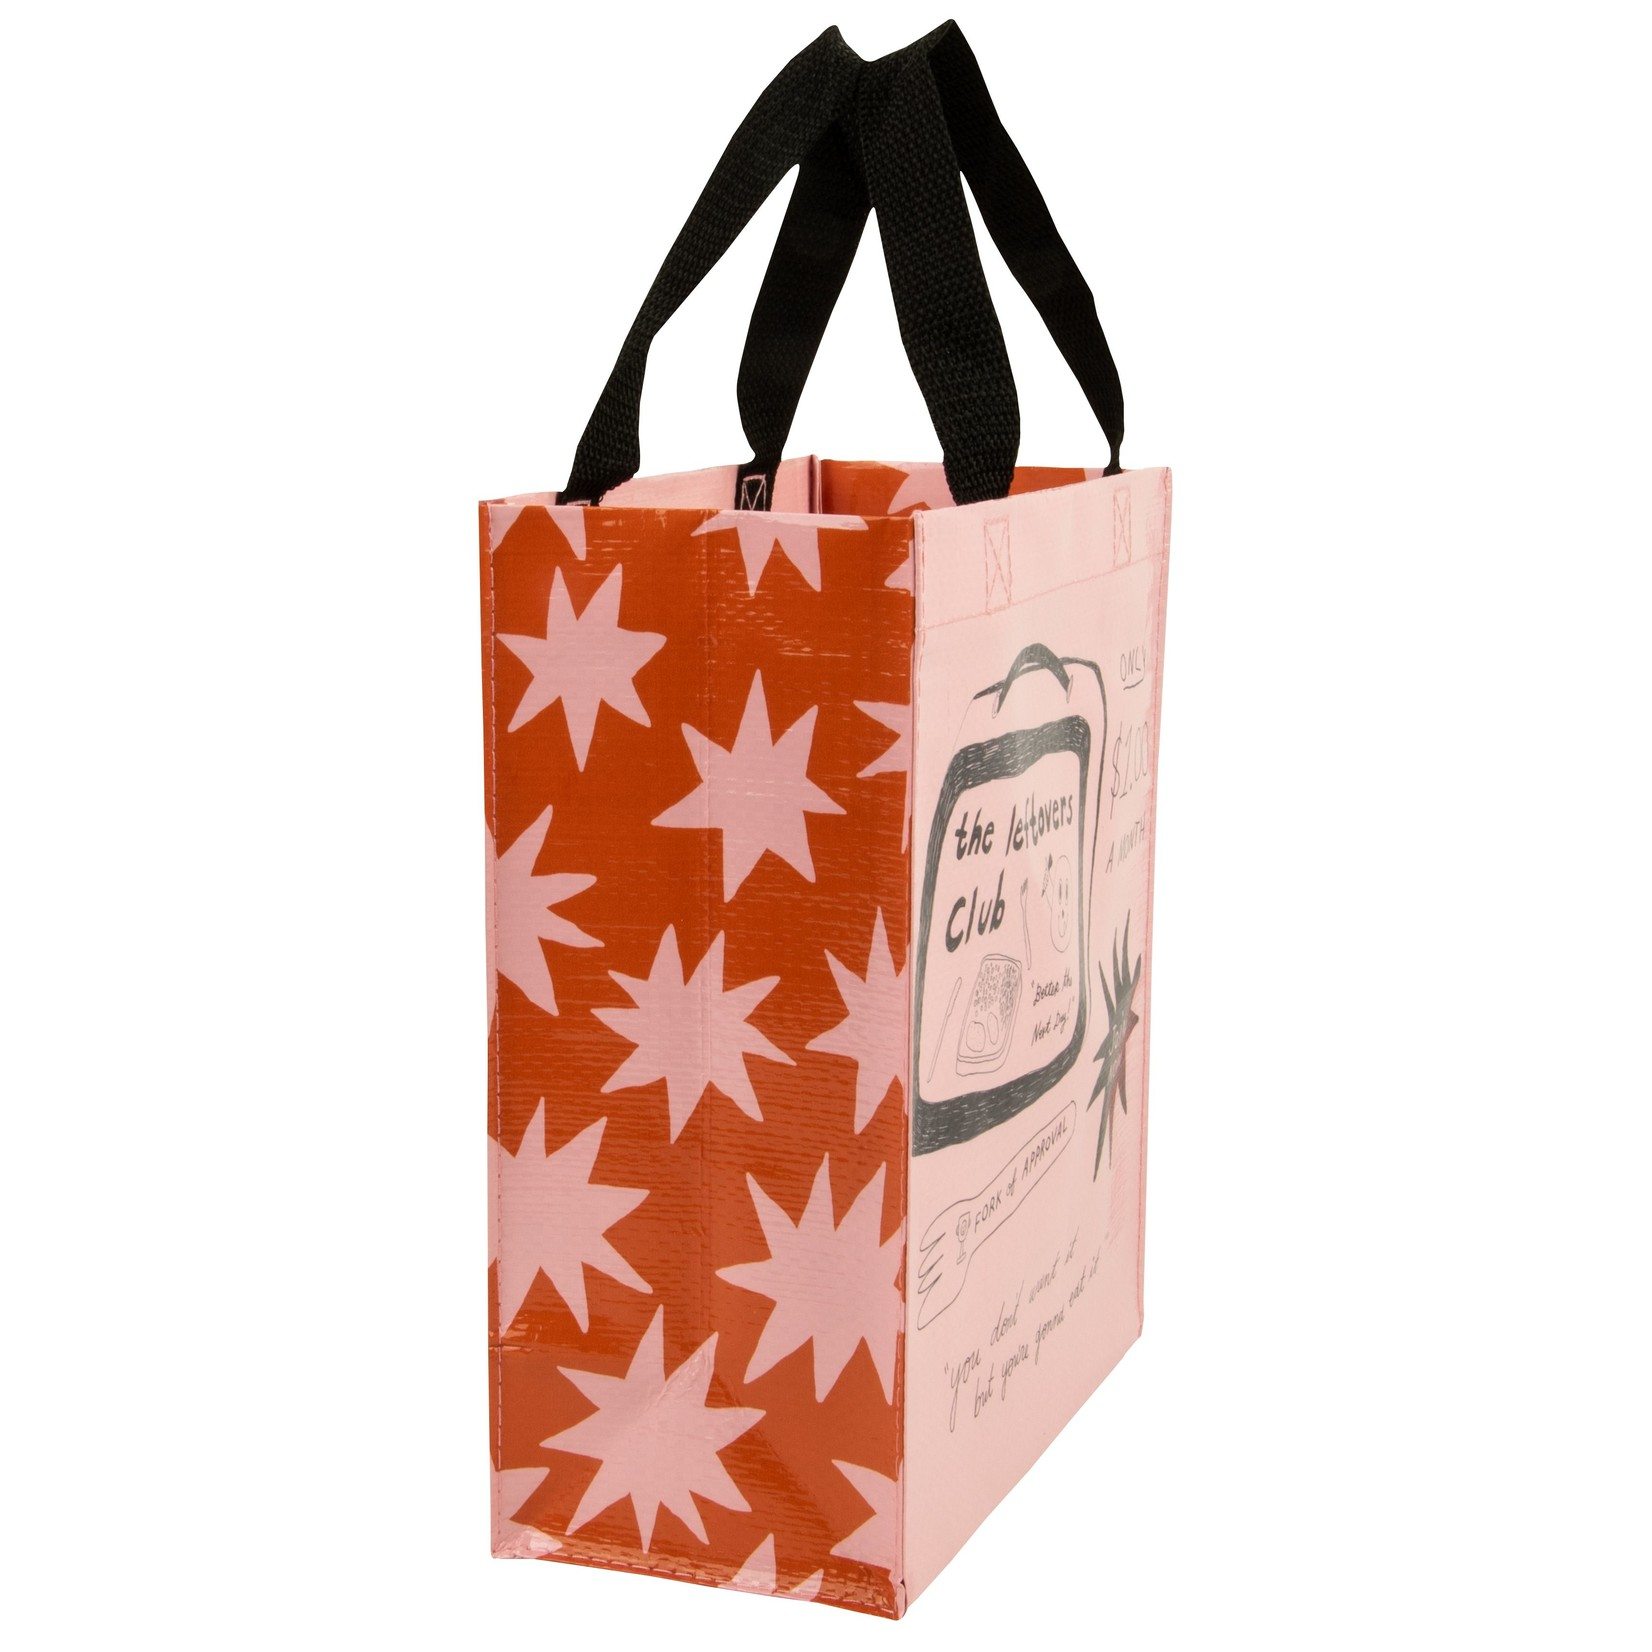 Blue Q The Leftovers Club Handy Tote